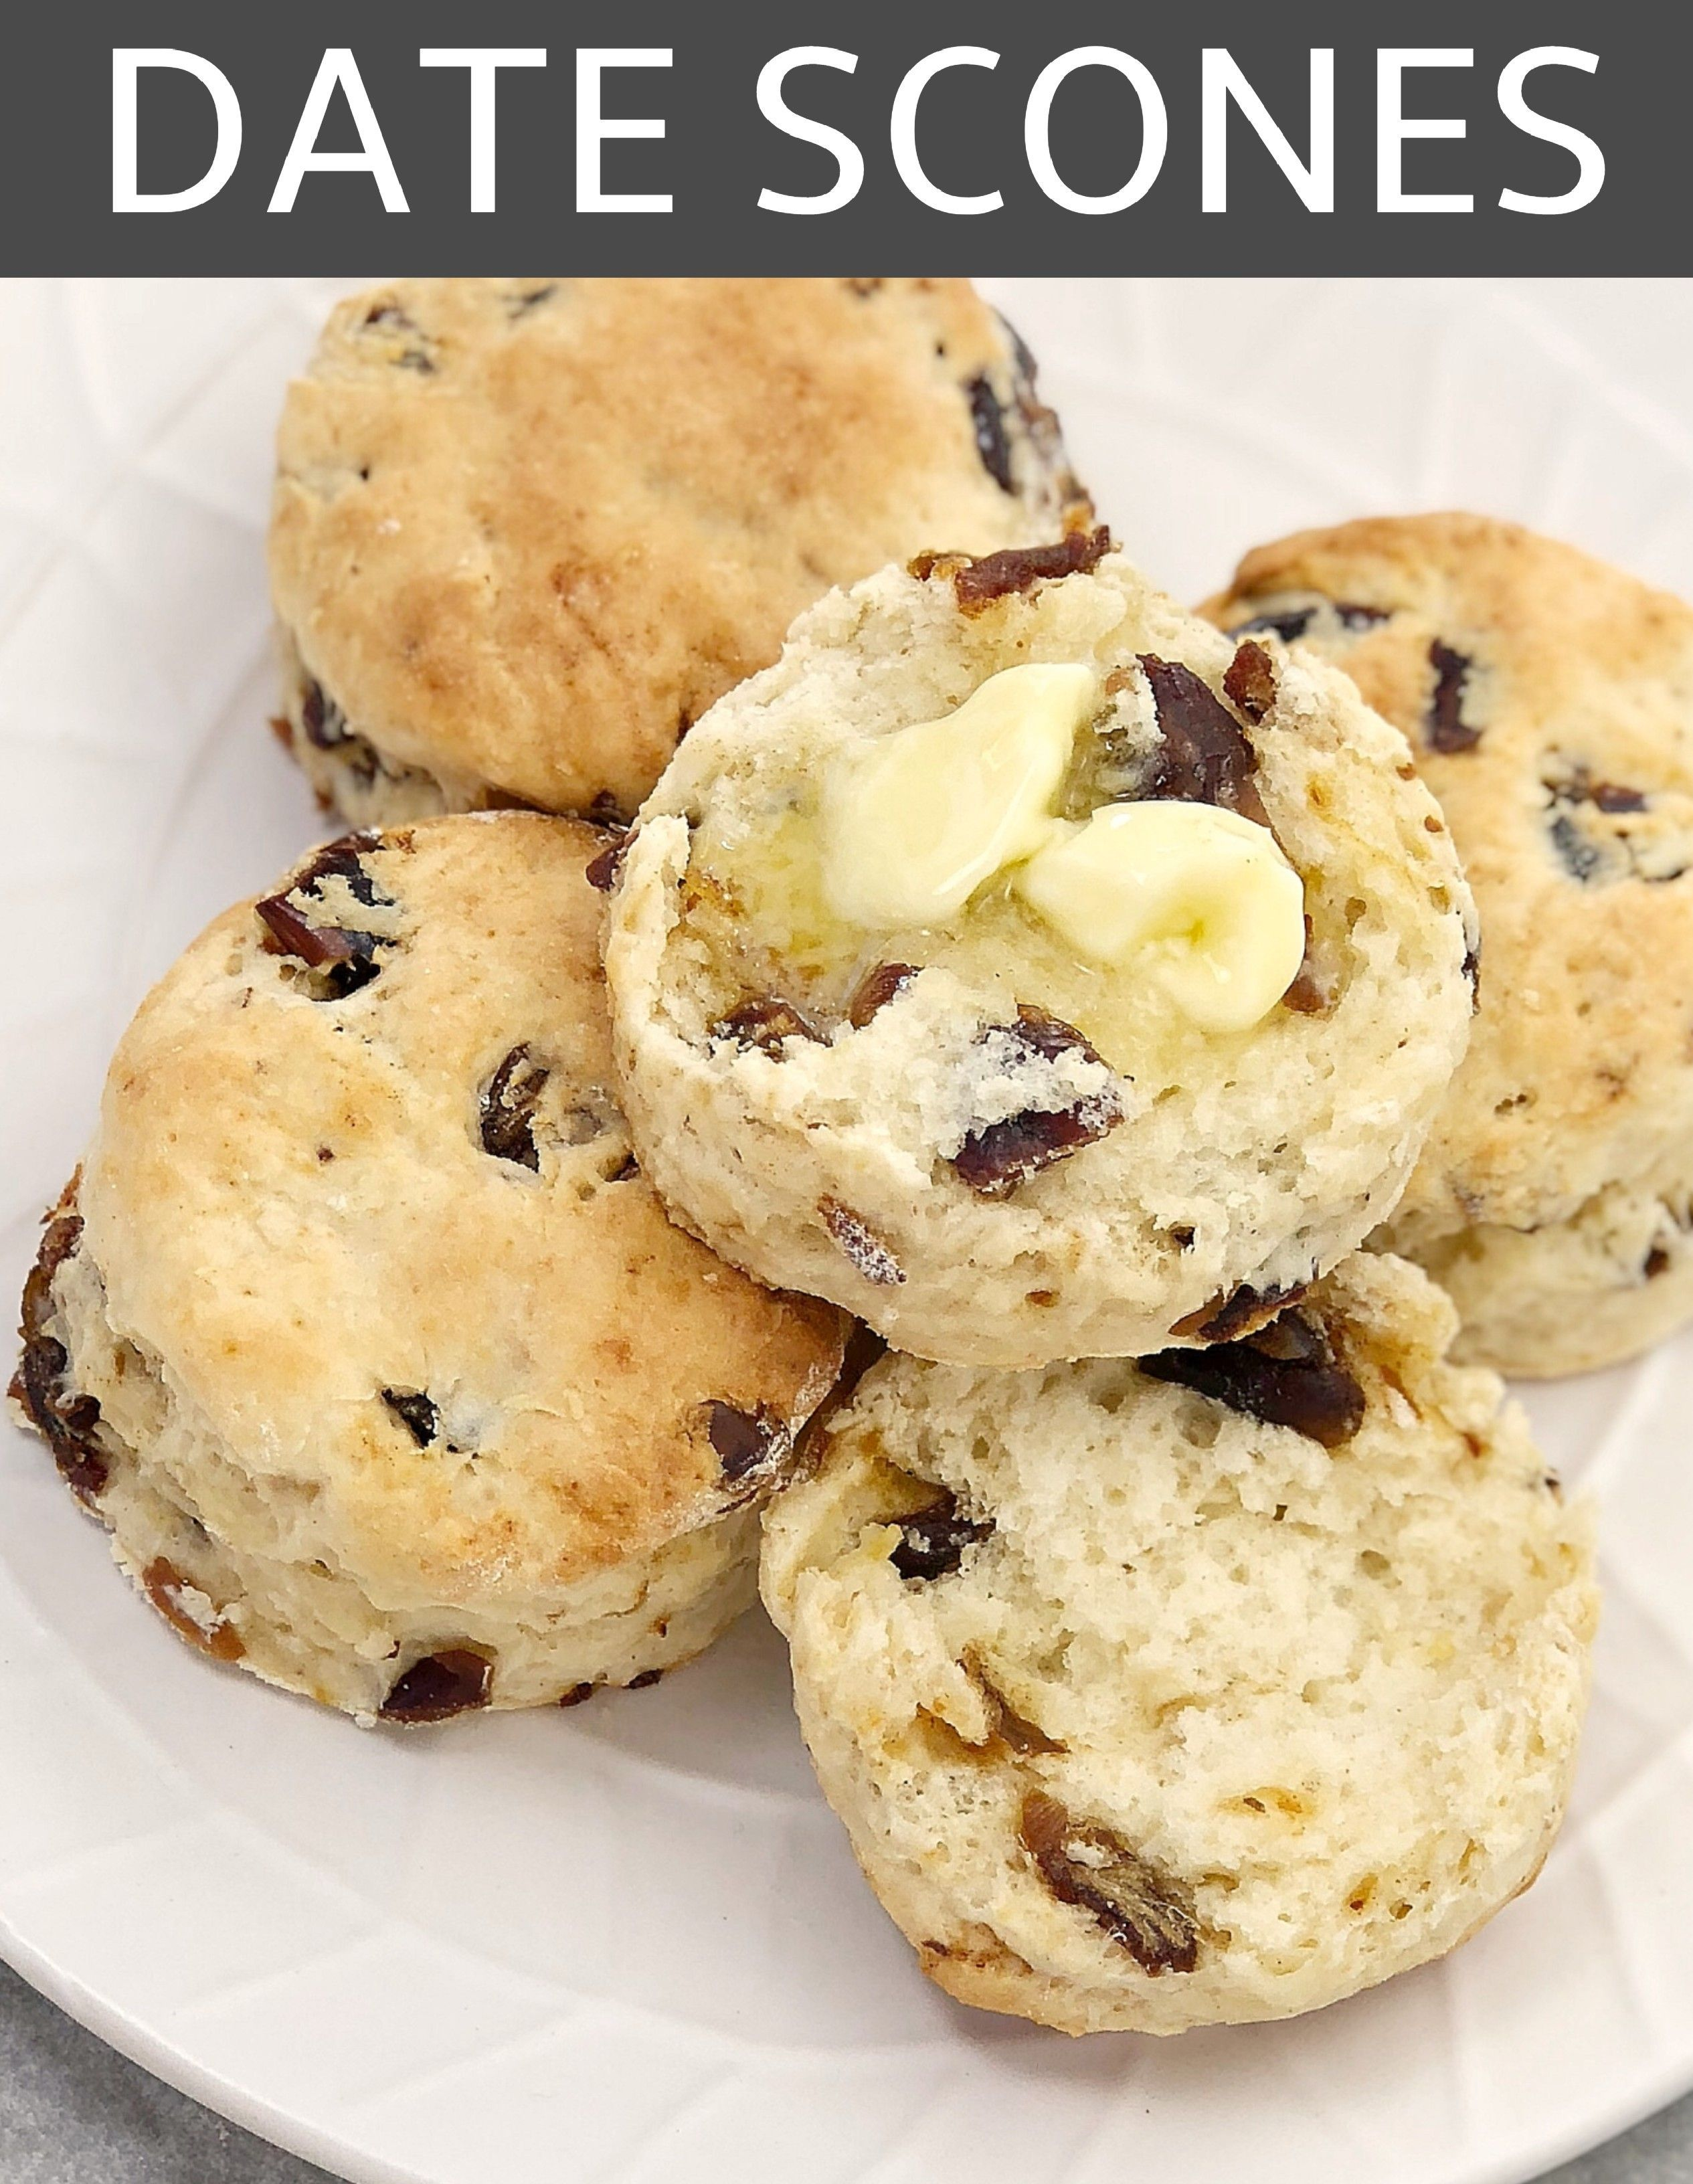 Easy Date Scones Chef Not Required Recipe In 2020 Easy Baking Recipes Date Scones Tasty Baking